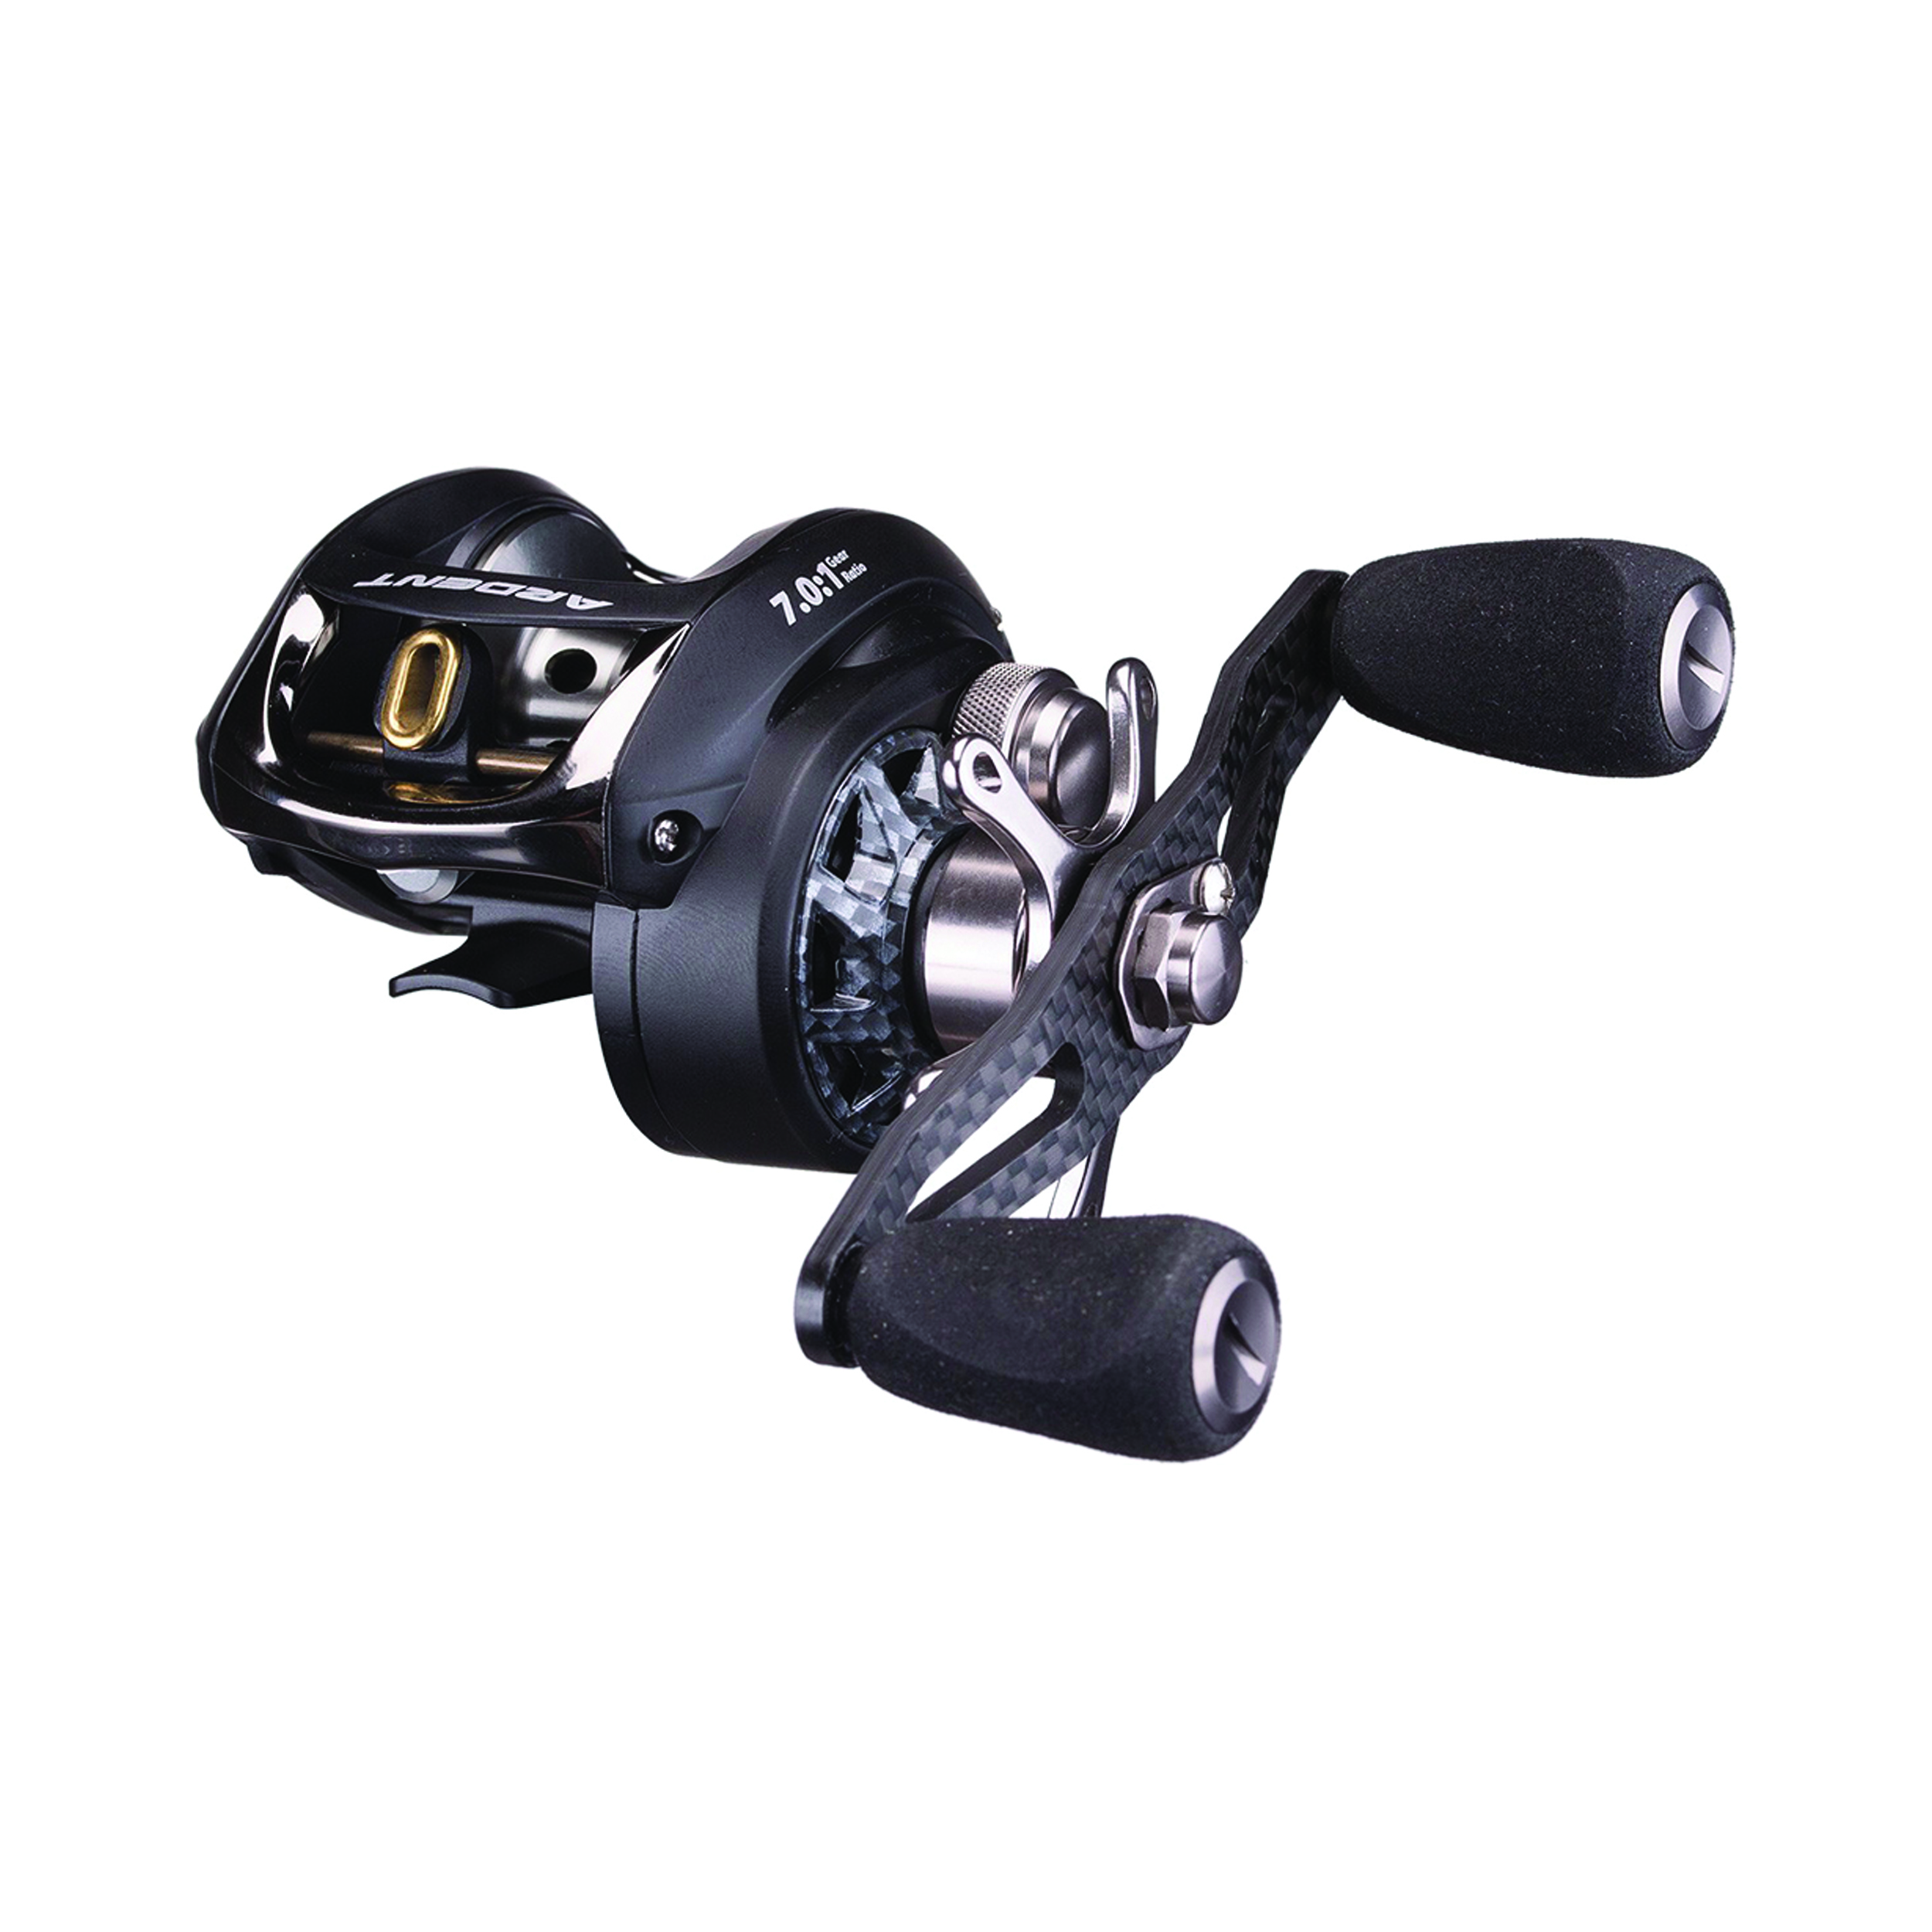 c force baitcasting reel left or right